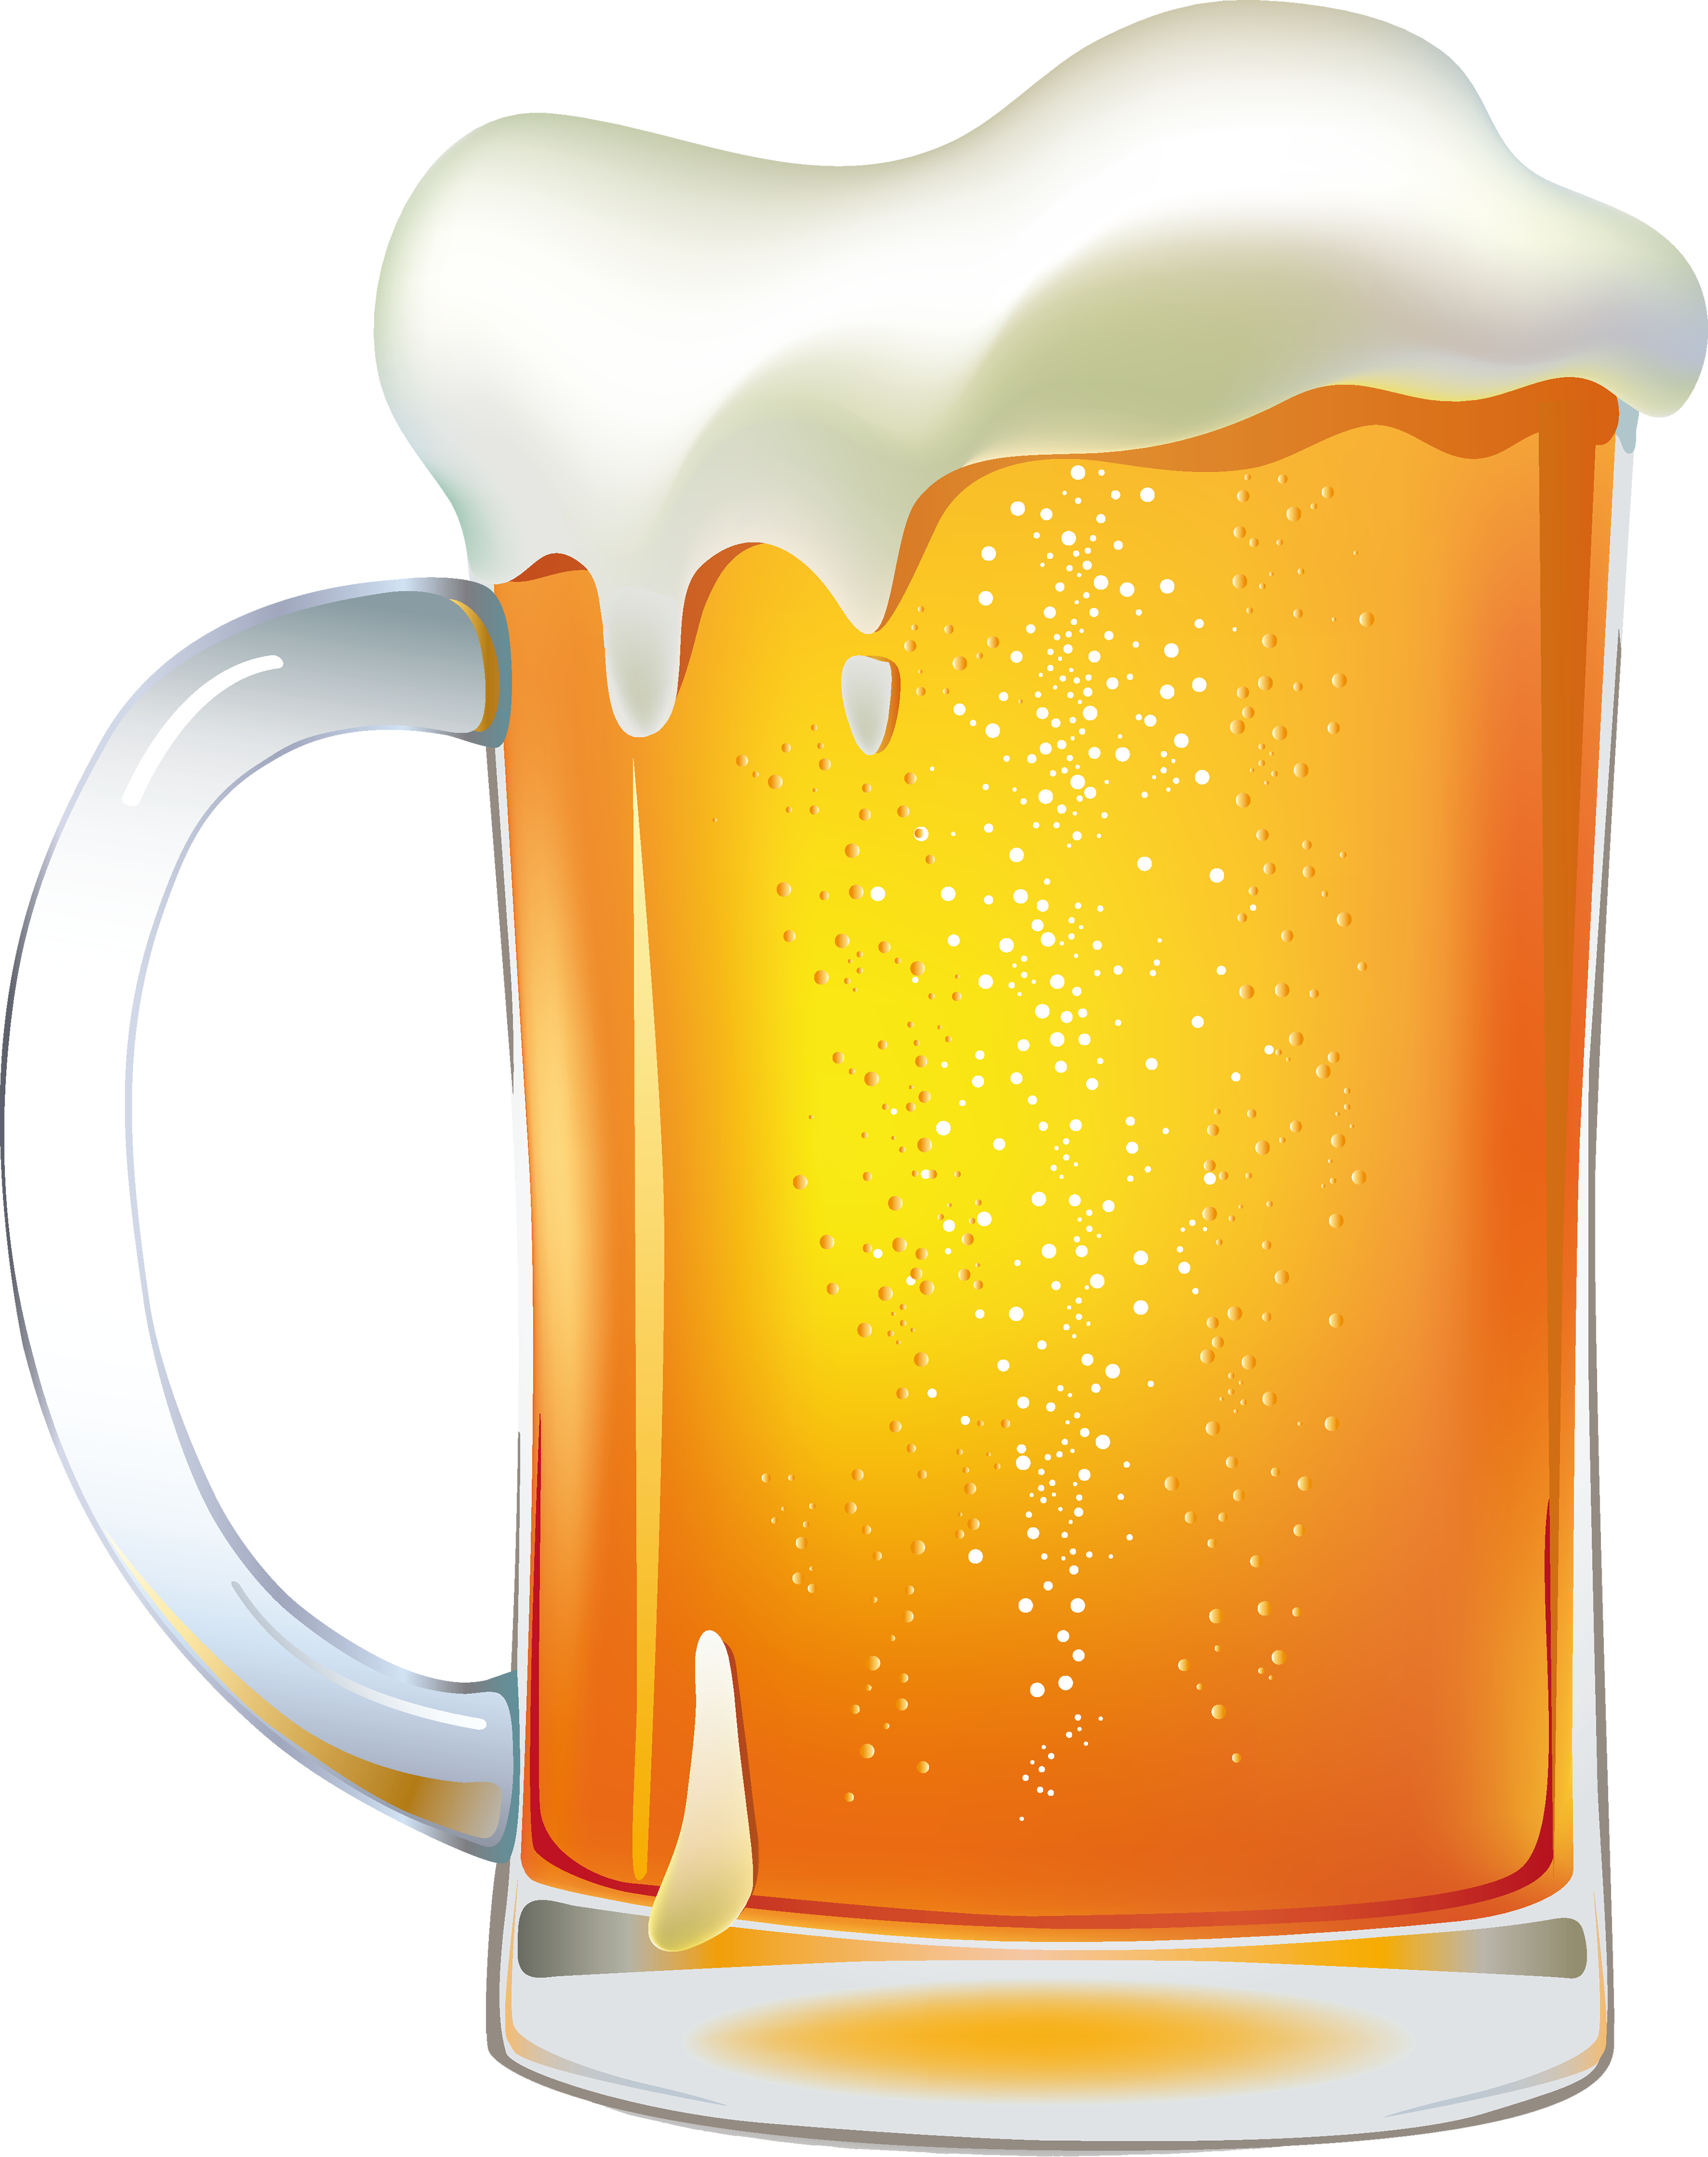 Beer clipart draught beer, Beer draught beer Transparent.